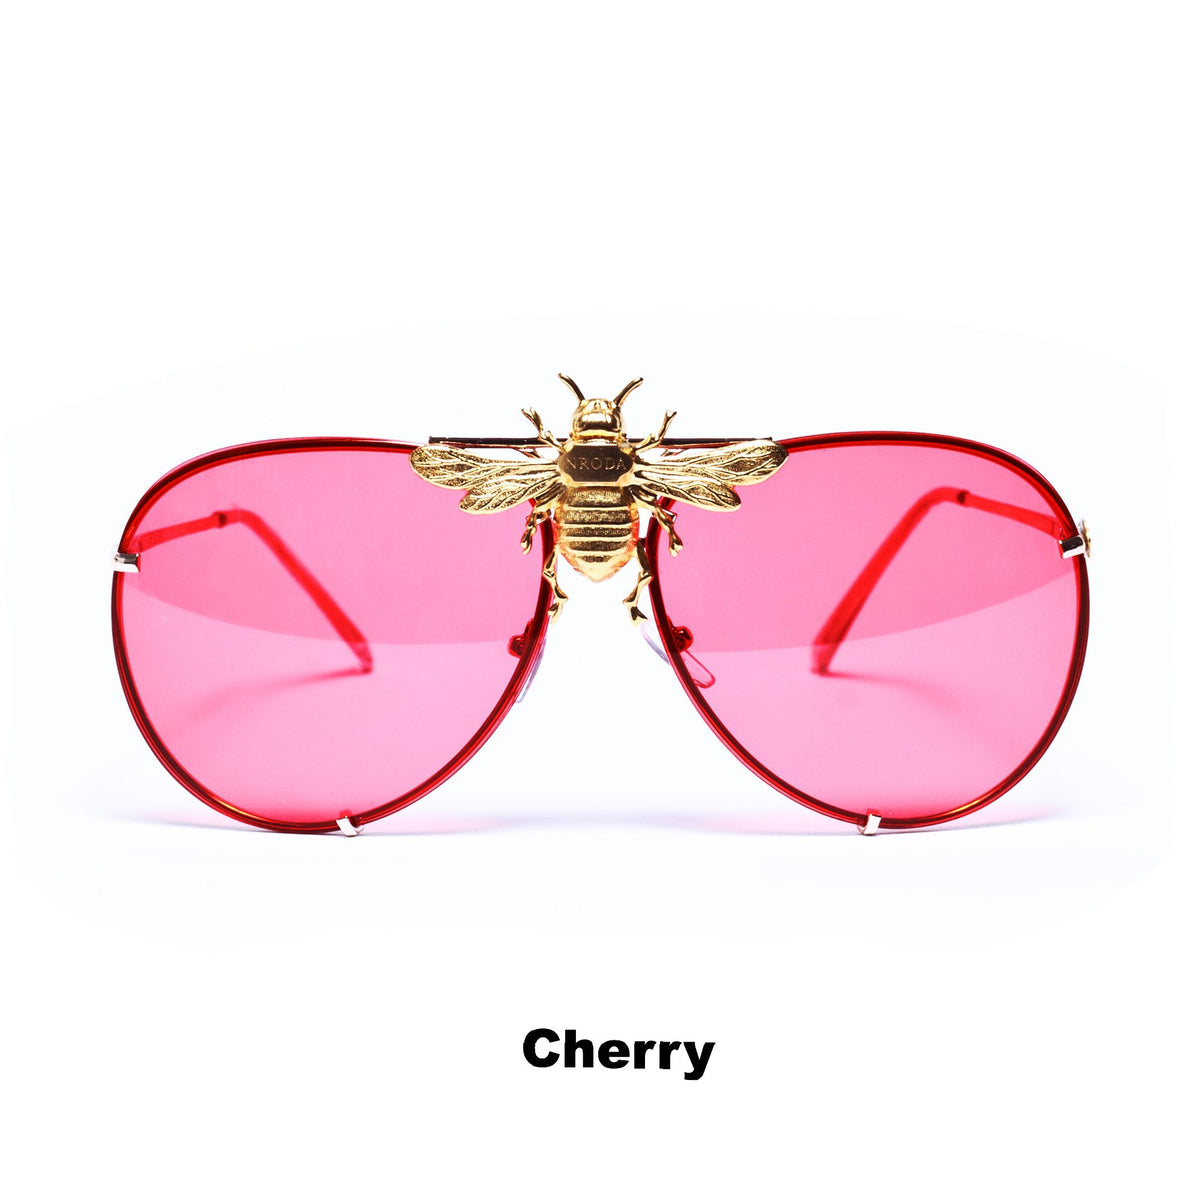 I'll Be Rich Forever Bee Sunglasses in Sky Blue  SUNNIES + OPTICS Sunglasses Collection- NRODA